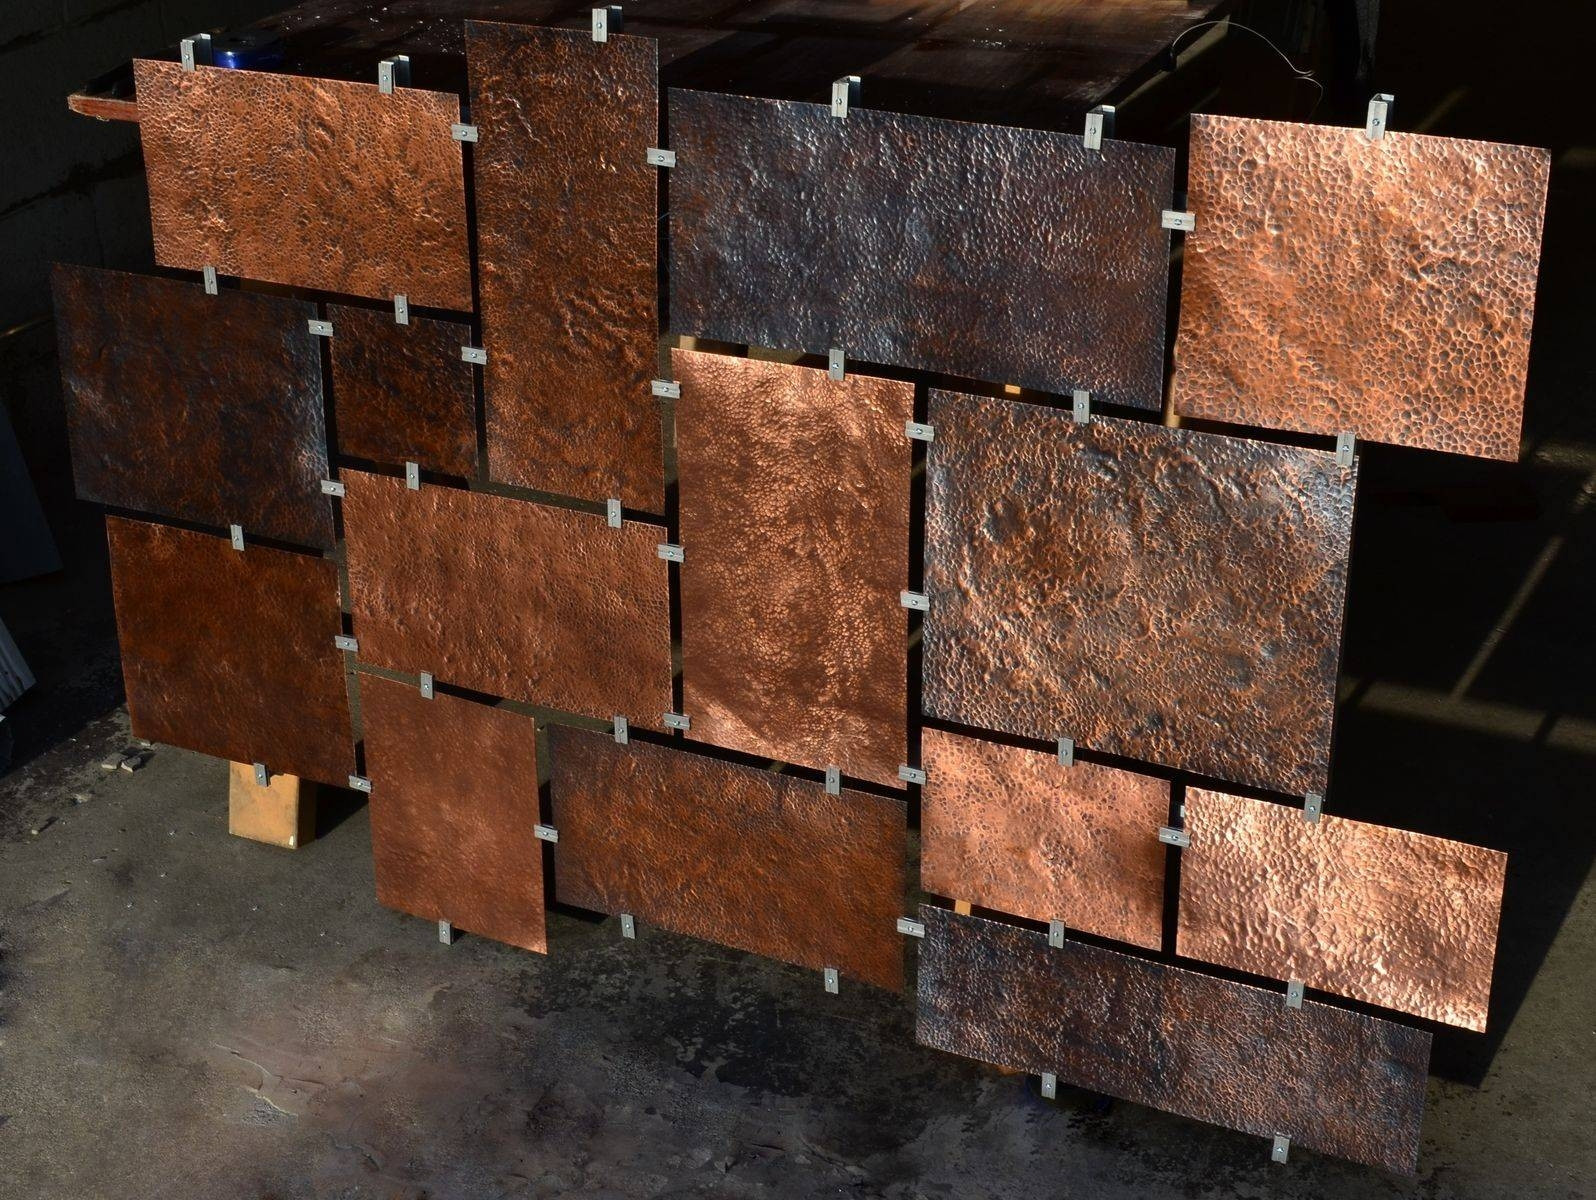 Hand Made Custom Hammered Copper Wall Artfabitecture Regarding Most Current Hammered Metal Wall Art (View 10 of 20)